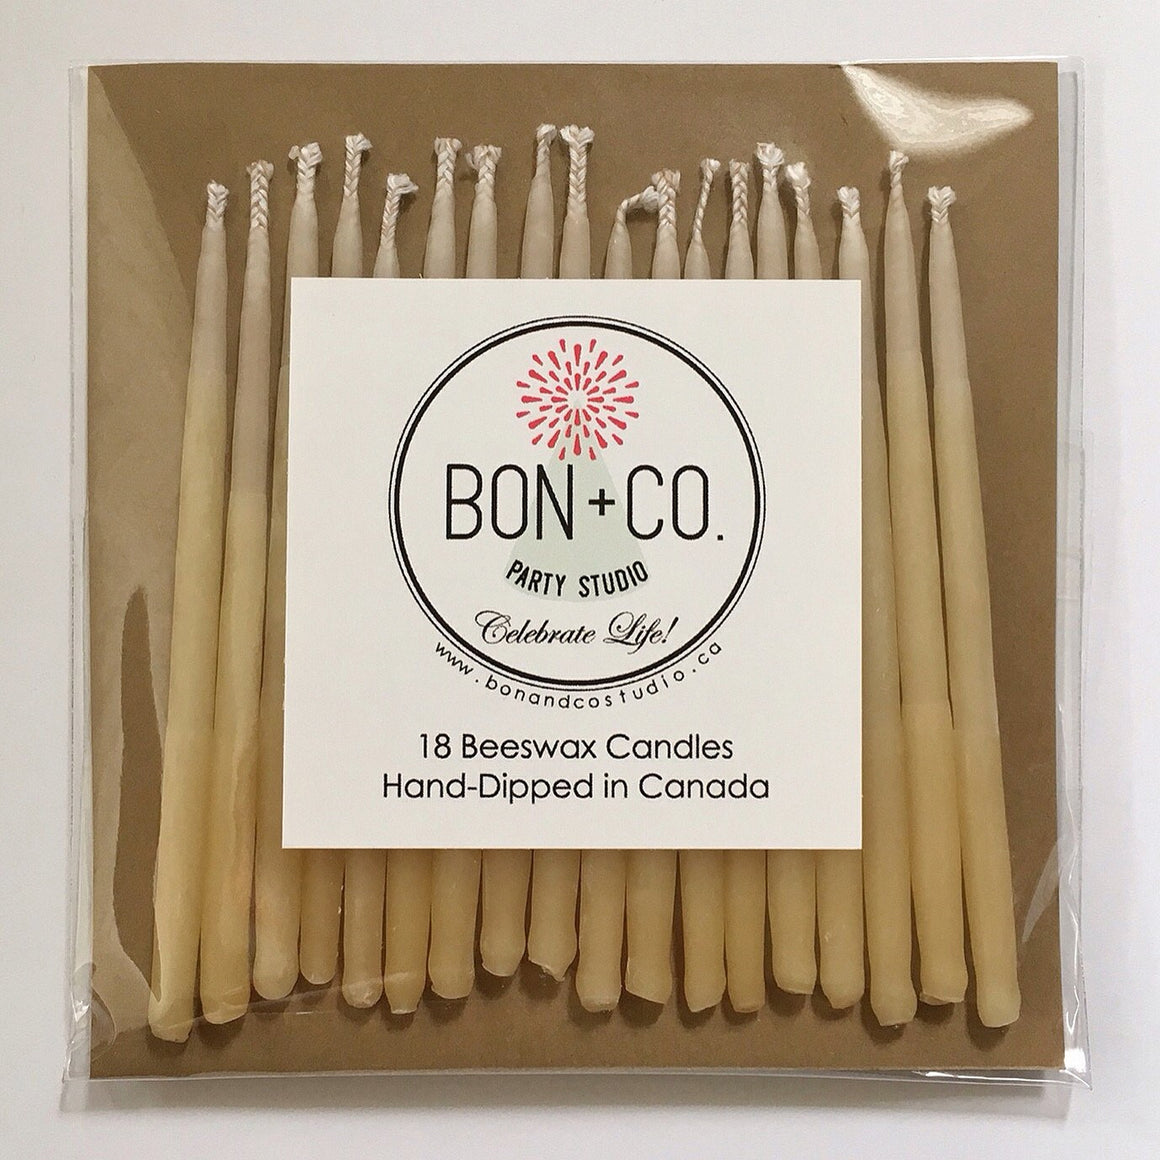 NATURAL PARTY CANDLES - BEESWAX OMBRE, Candles + Sparklers, BON + CO - Bon + Co. Party Studio